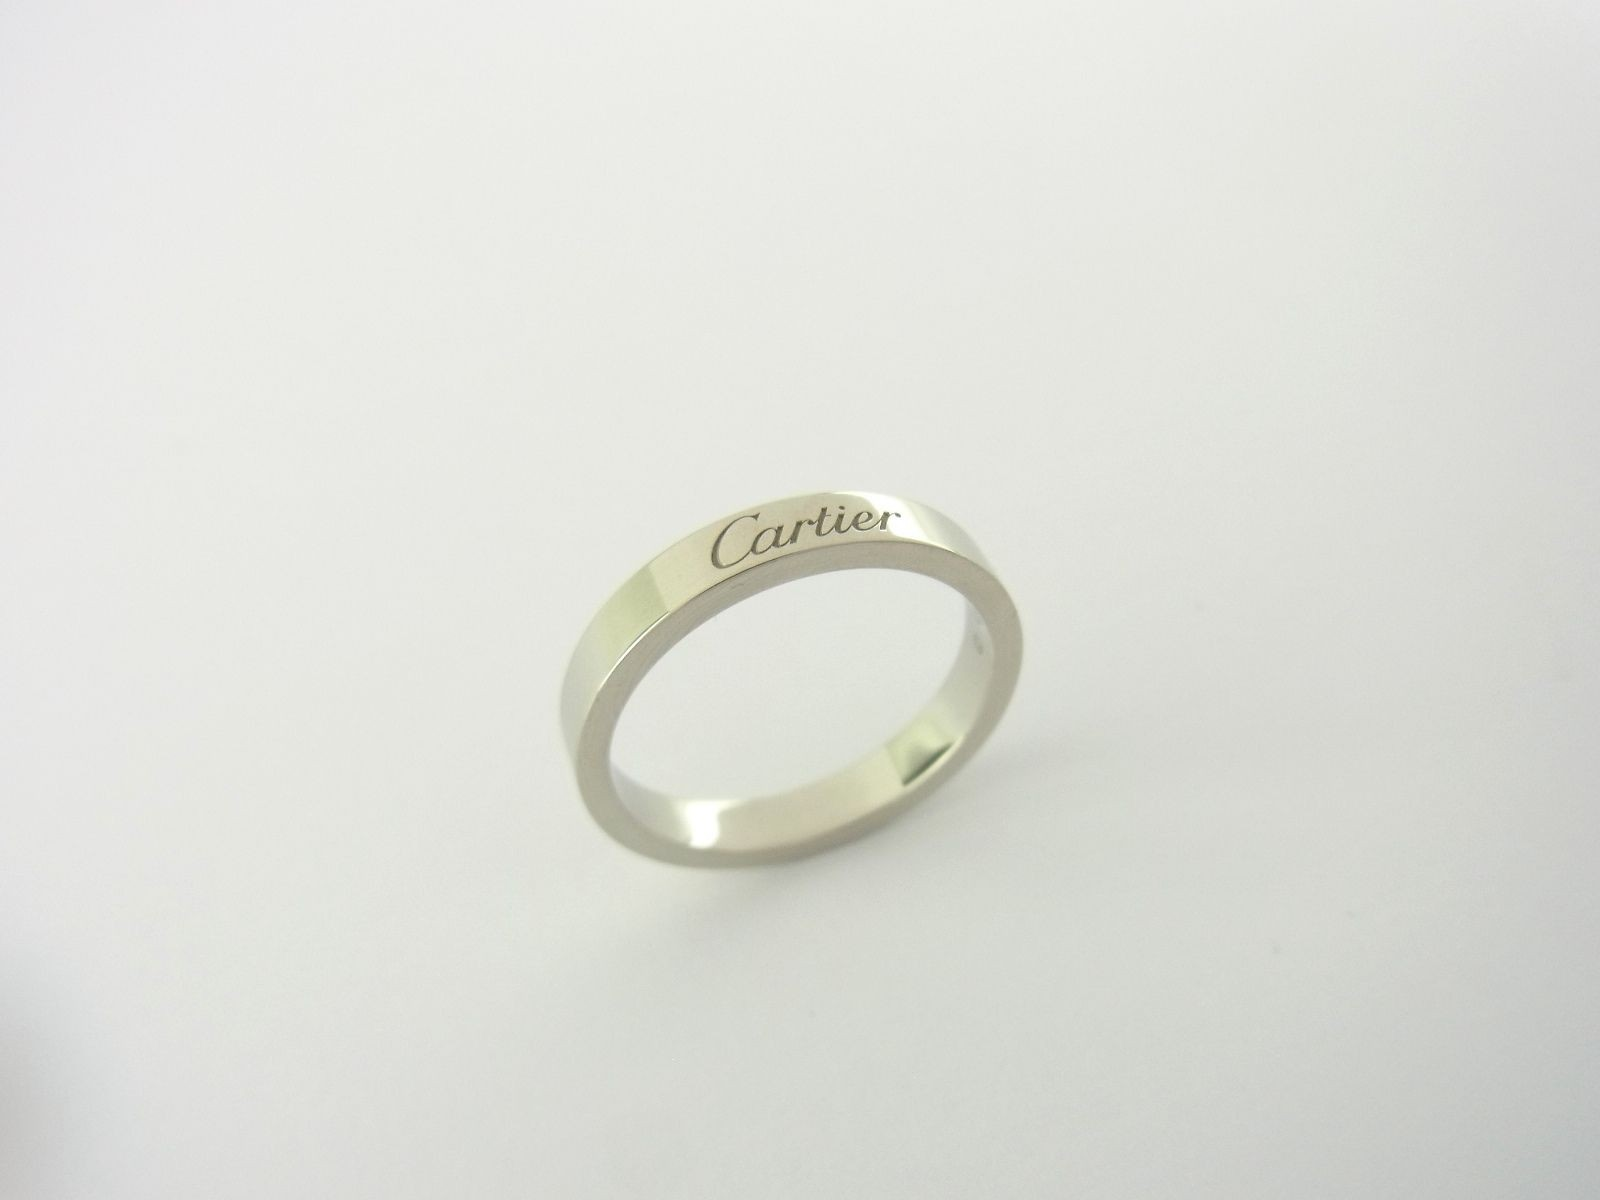 Cartier Ring Ehering Trauring 950er Platin Grosse Size 51 Luxini